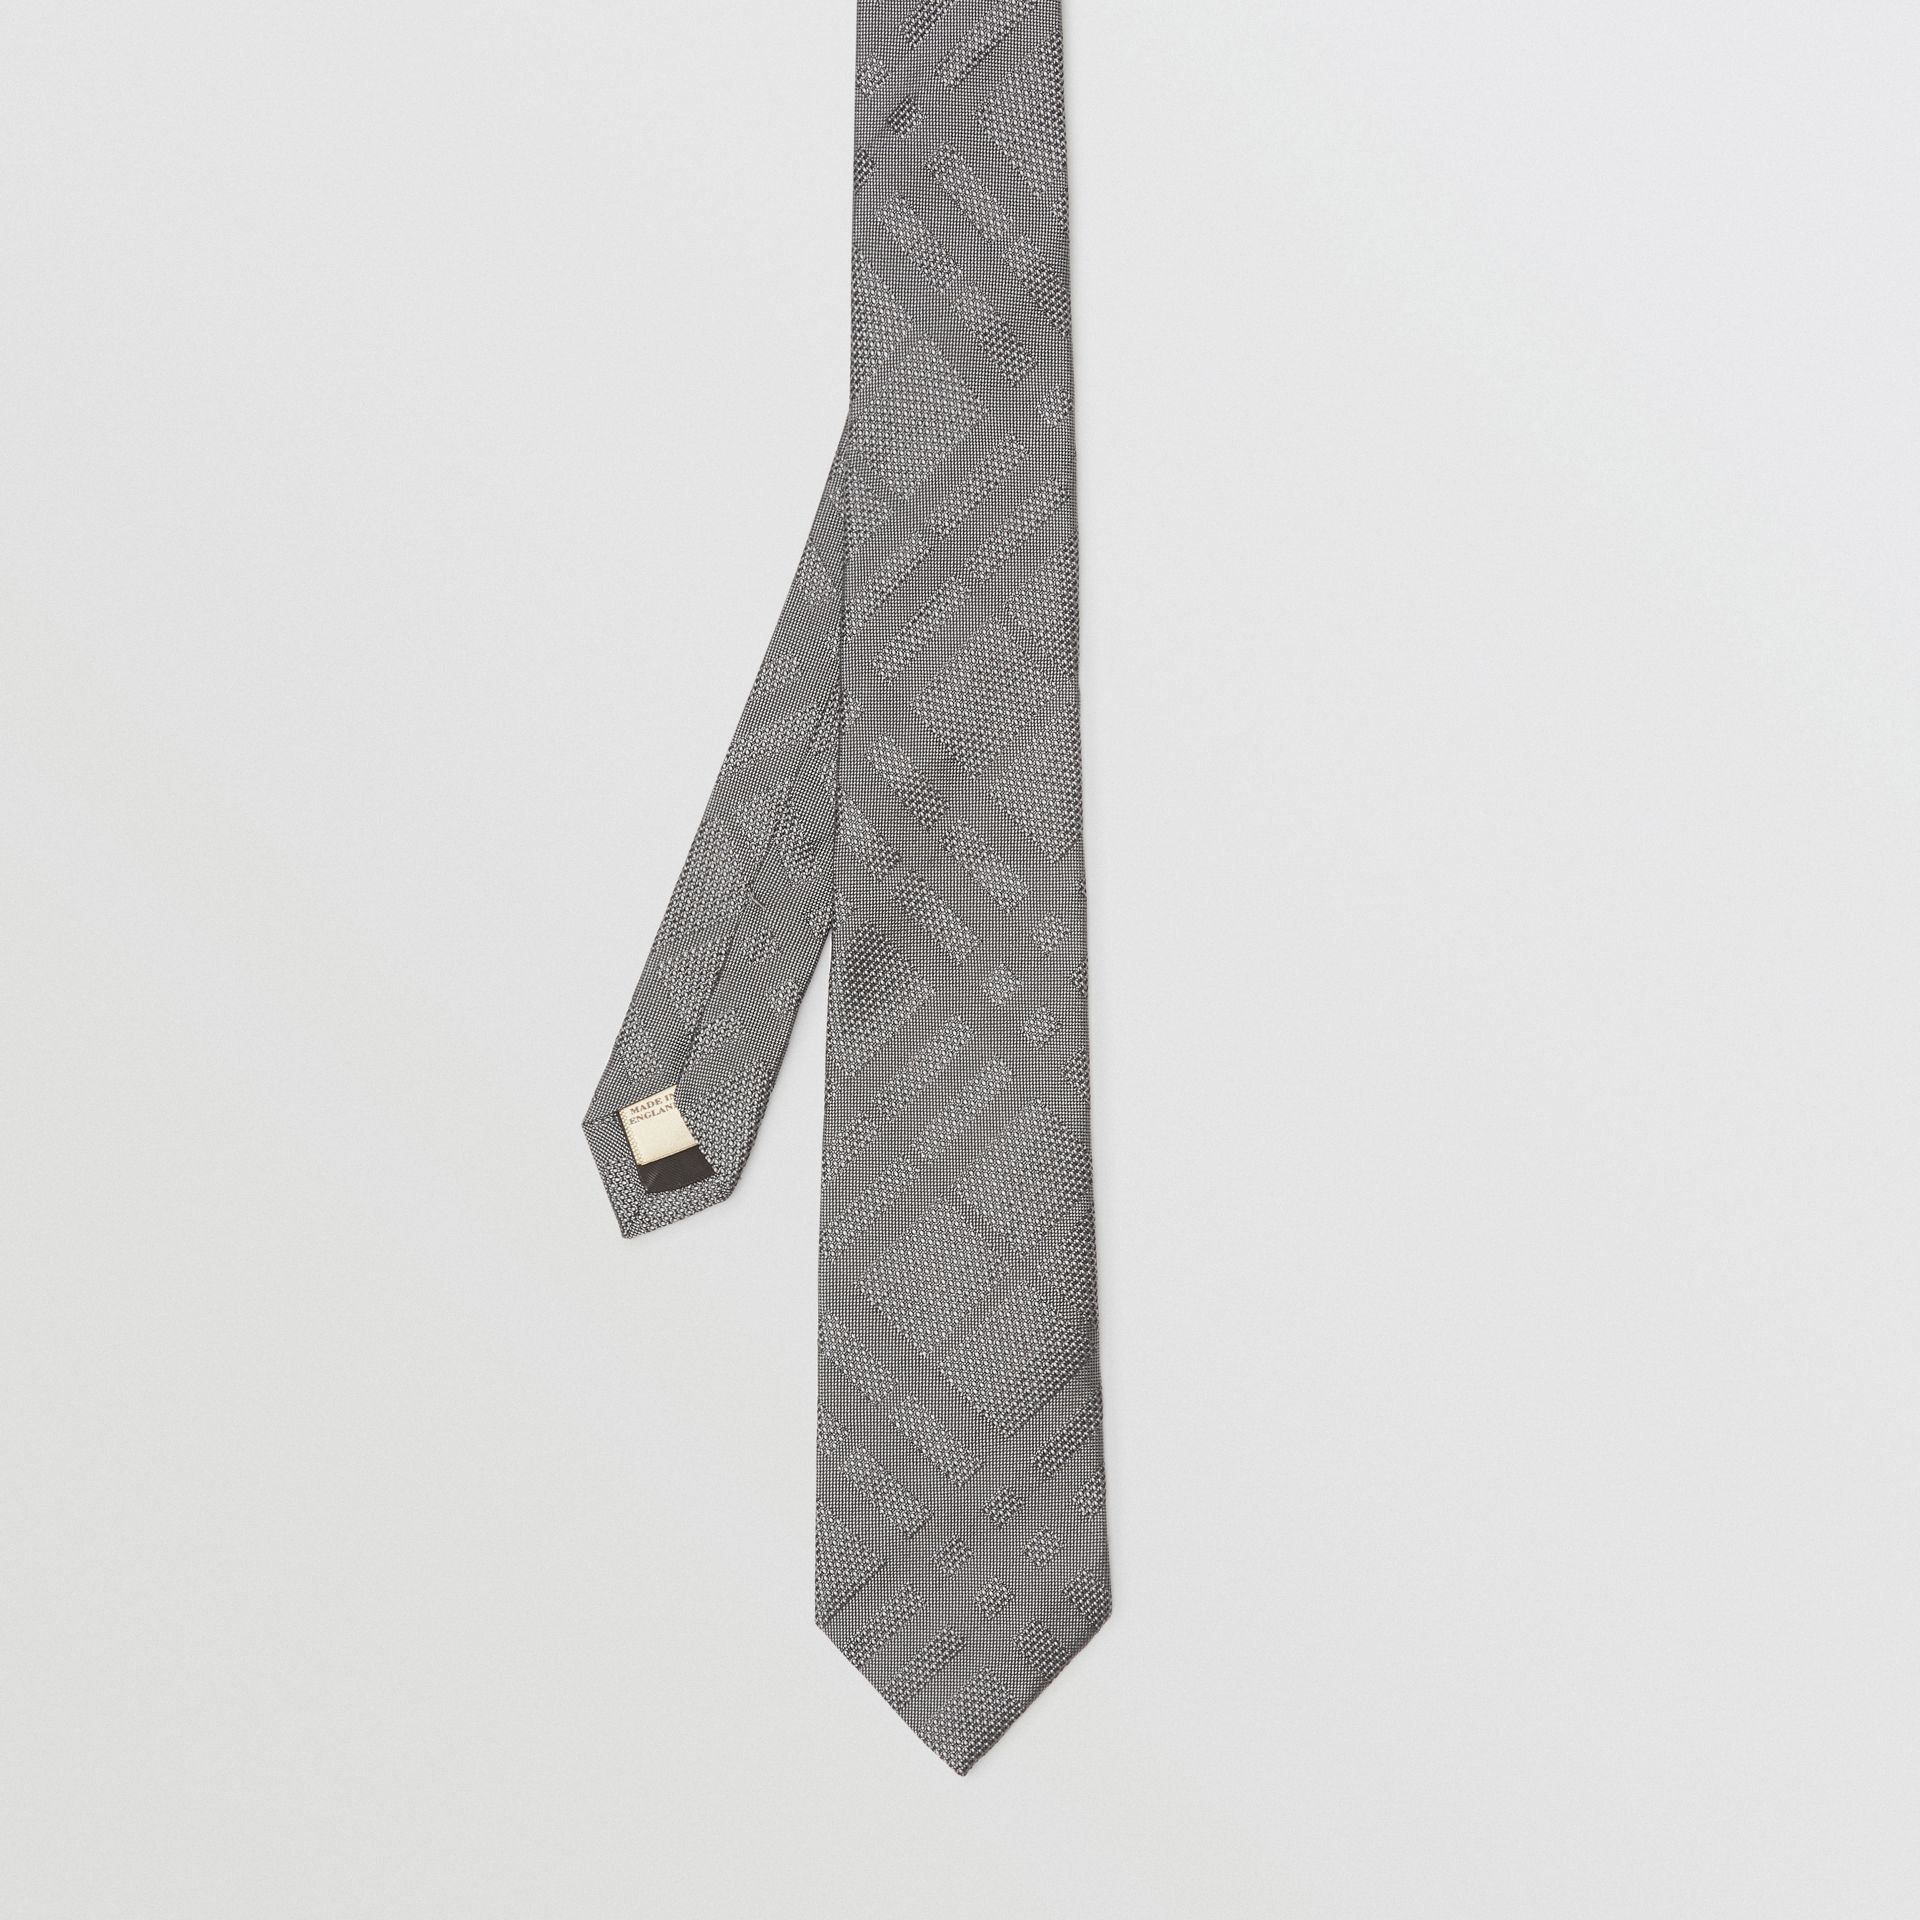 Classic Cut Check Silk Jacquard Tie in Charcoal - Men | Burberry Australia - gallery image 4